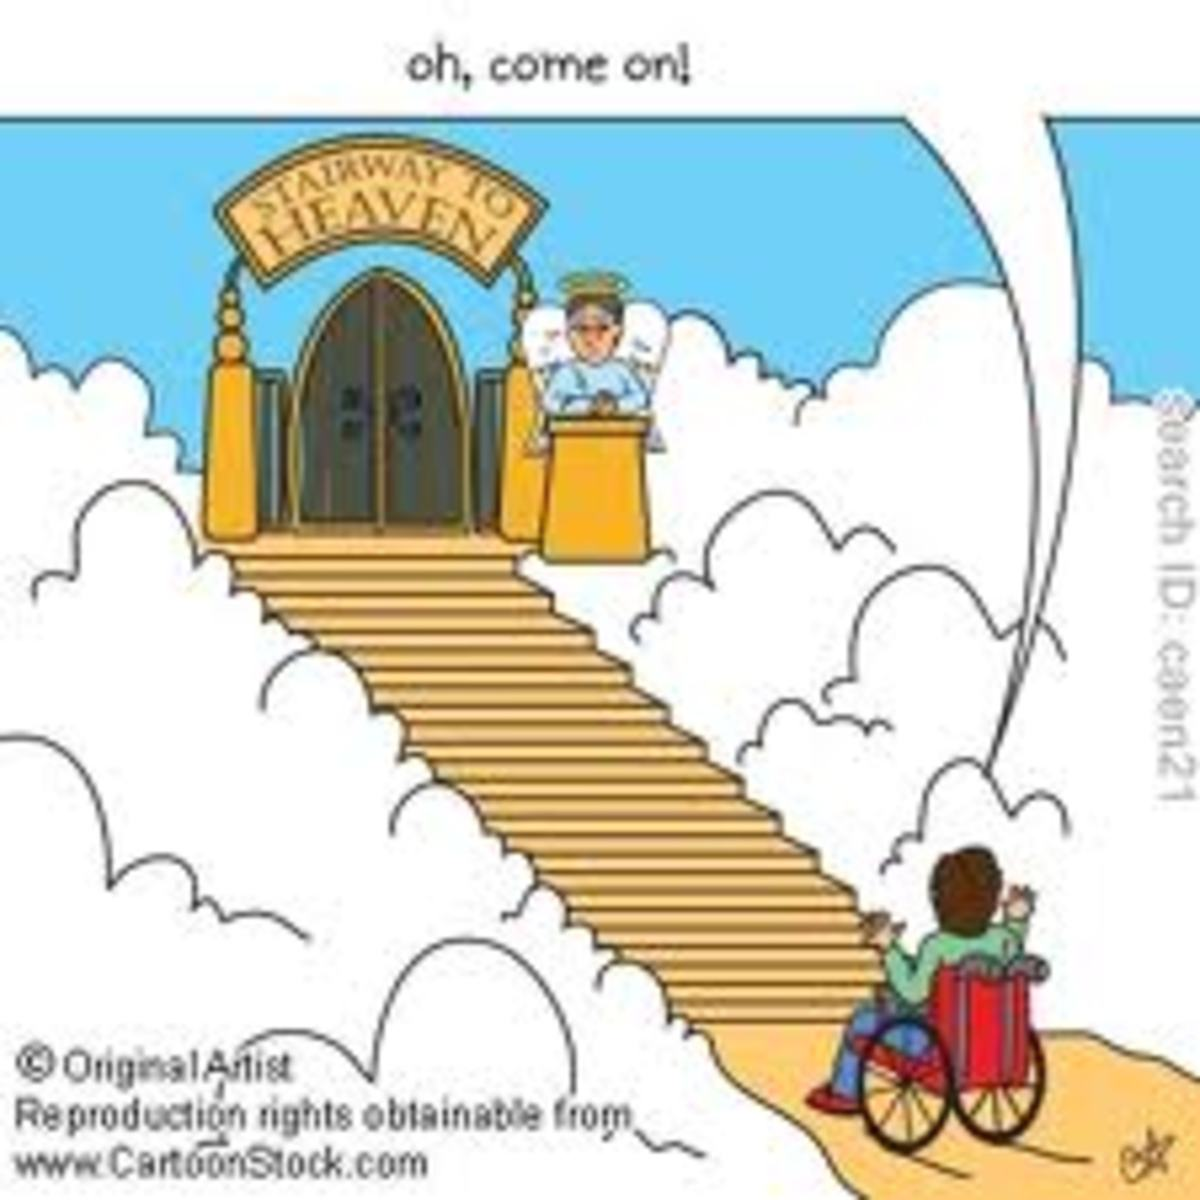 Cartoon of our imaginary afterlife, showing that we all would like to go on the stairways to heaven. But it is not all that simple, because first of all we should be ready and worthy to be allowed to go up.